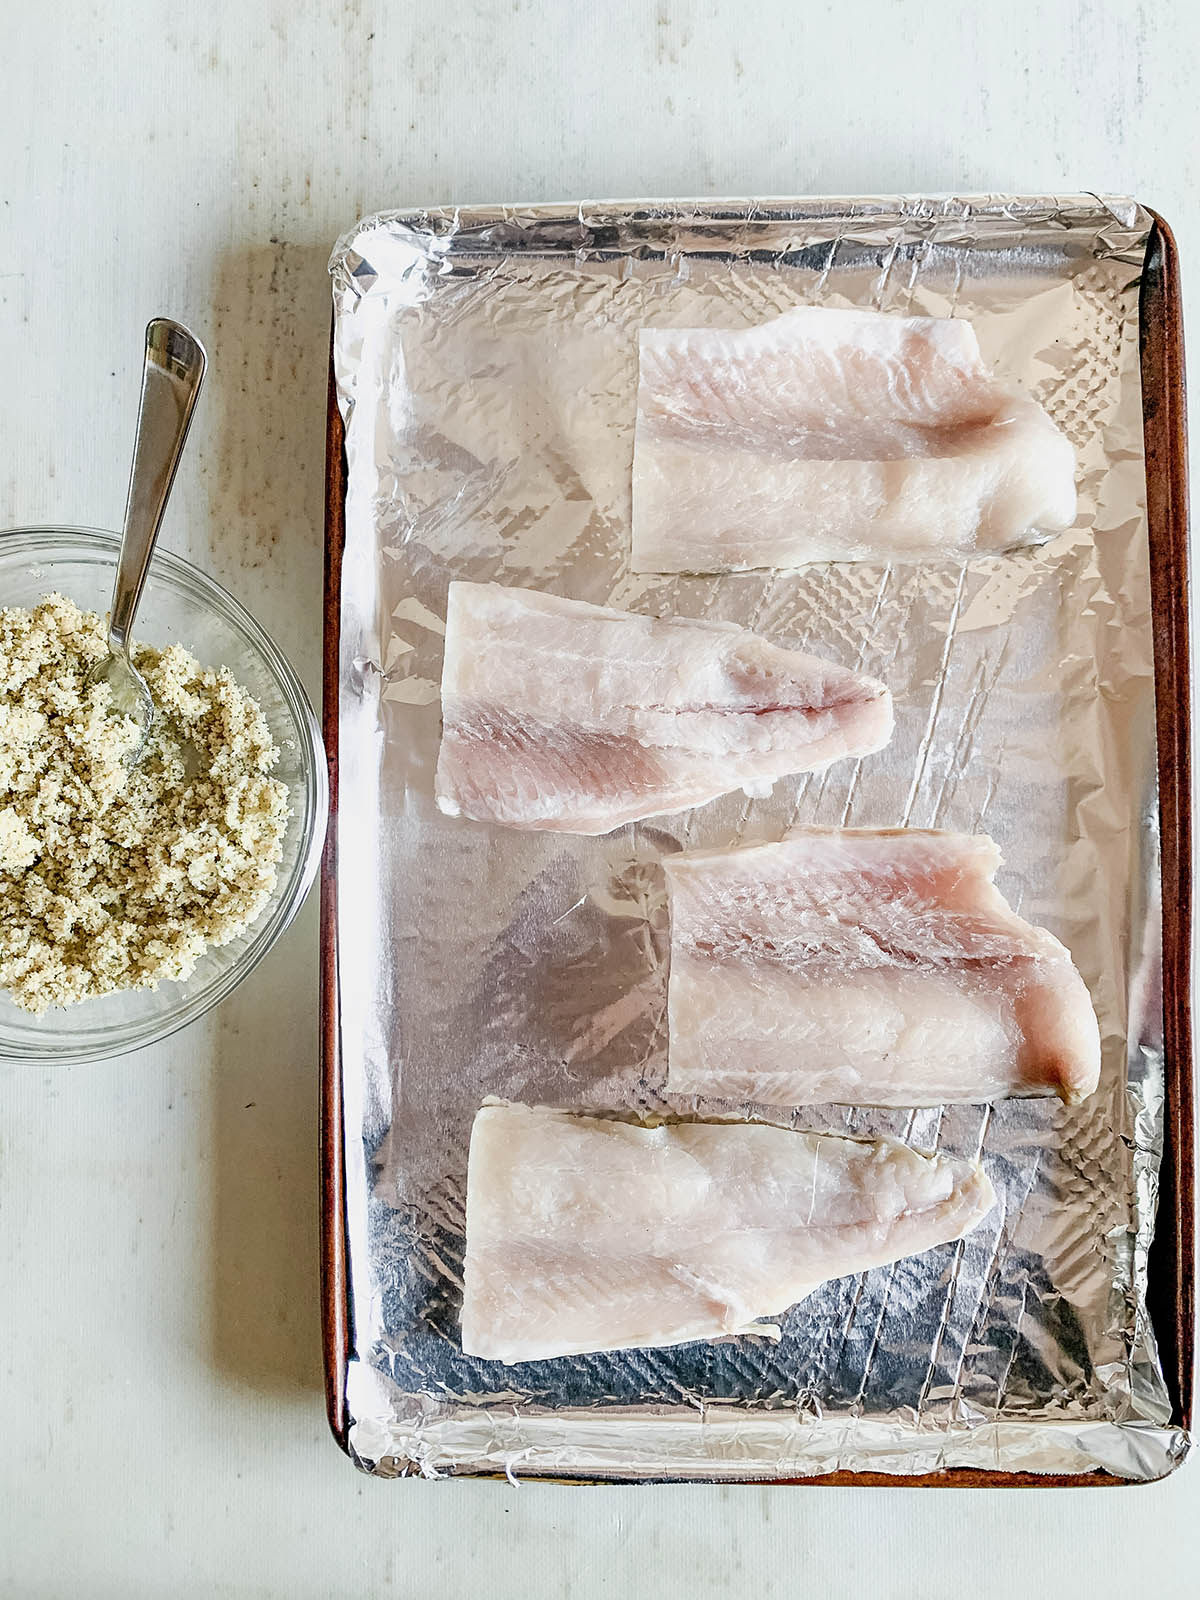 Four raw fish filets on a foil-lined baking sheet next to a bowl of mixed breadcrumbs and spices.